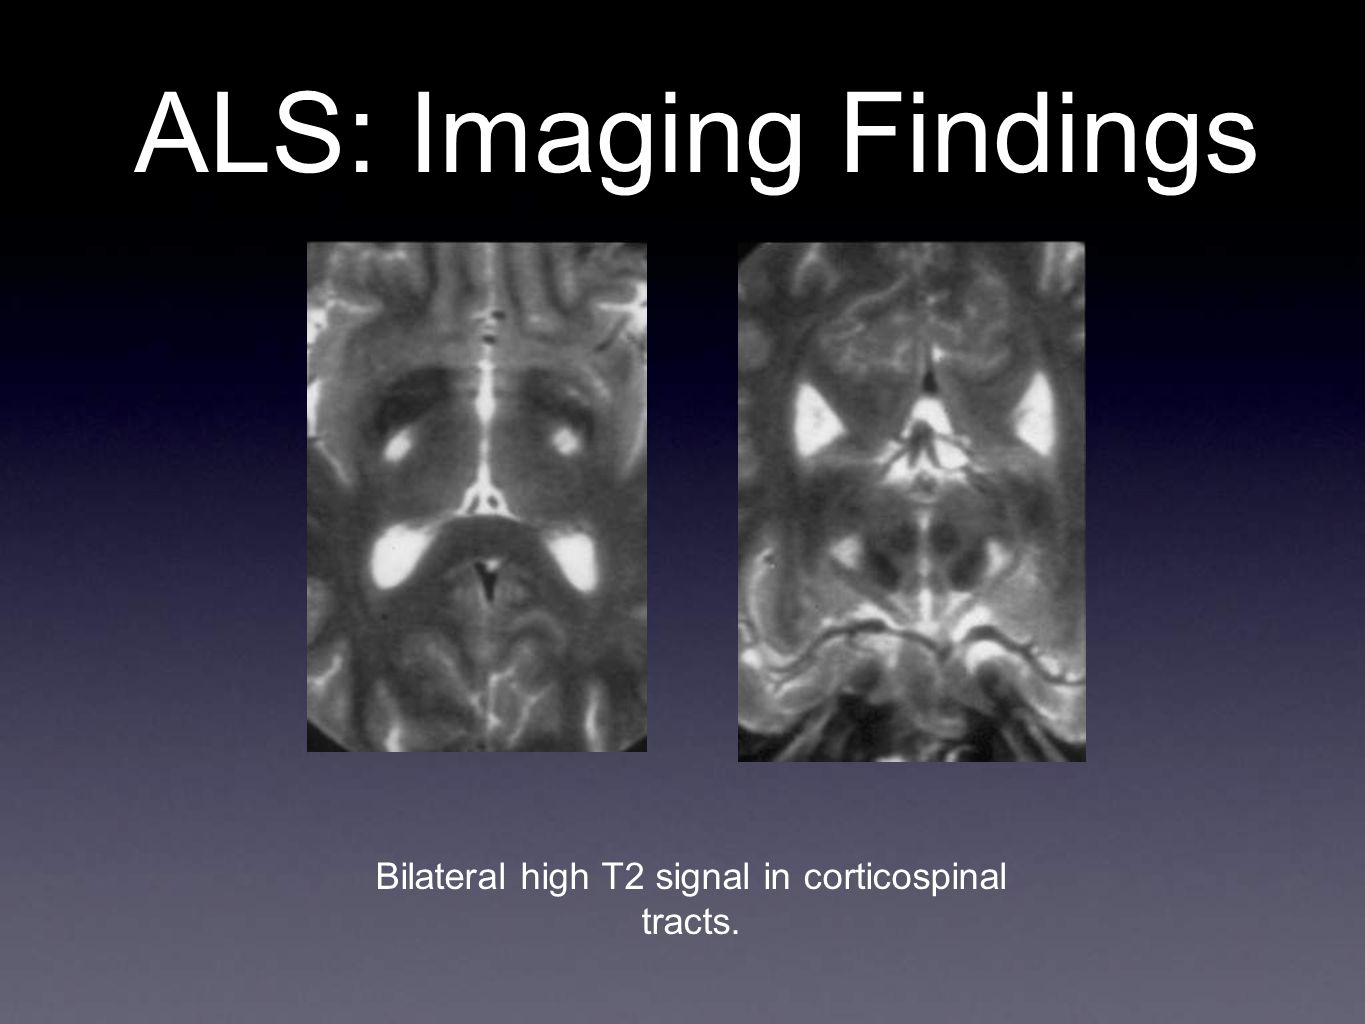 Bilateral high T2 signal in corticospinal tracts.